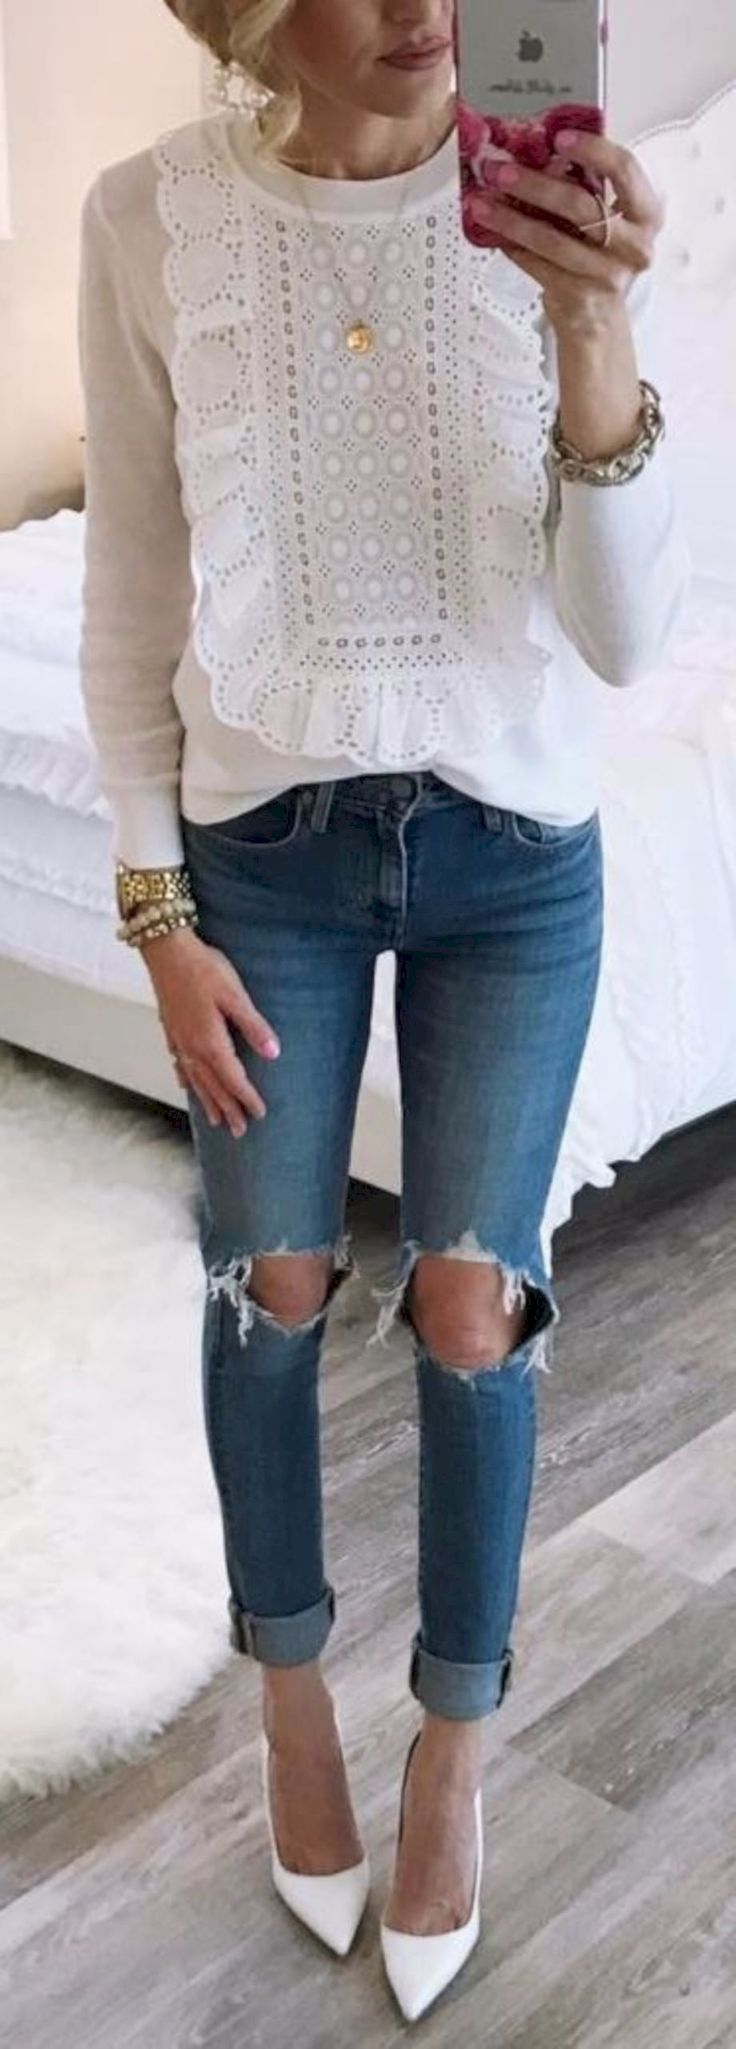 Nice 61 Trending Fall Outfits Ideas to Fill Out Your Style from https://fashionetter.com/2017/08/12/61-trending-fall-outfits-ideas-fill-style/